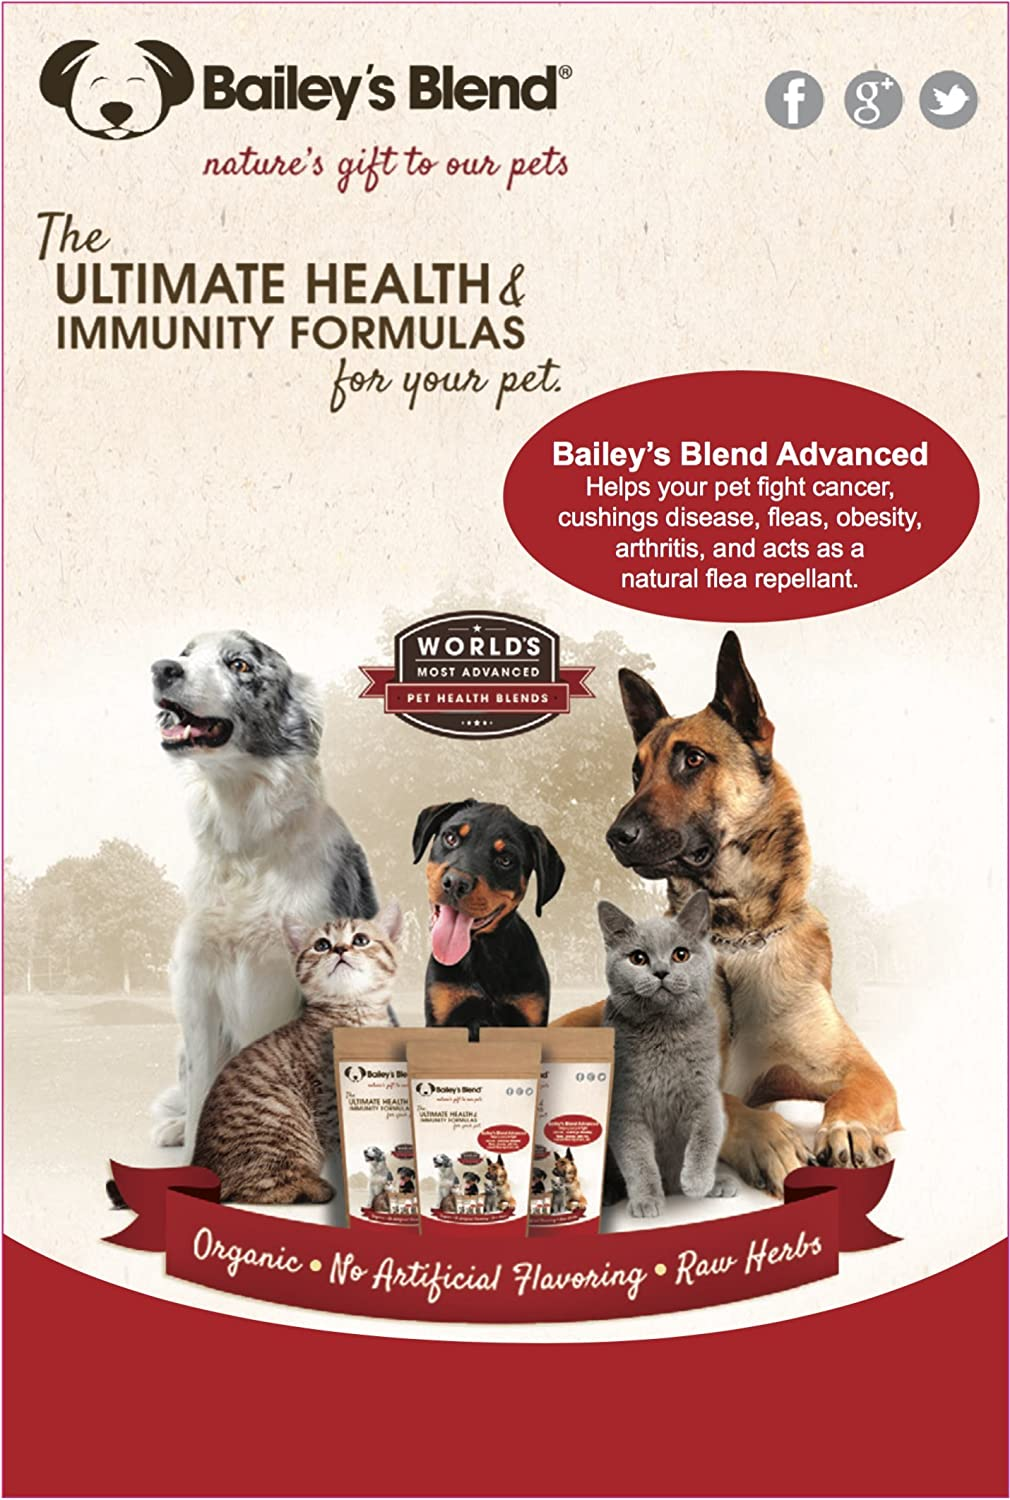 Cancer herbs for dogs - Amazon Com Bailey S Blend Peak Performance Formula Organic Herbal Supplement For Dogs 224 Grams Aids In Preventing Cancer Arthritis Cushing Disease